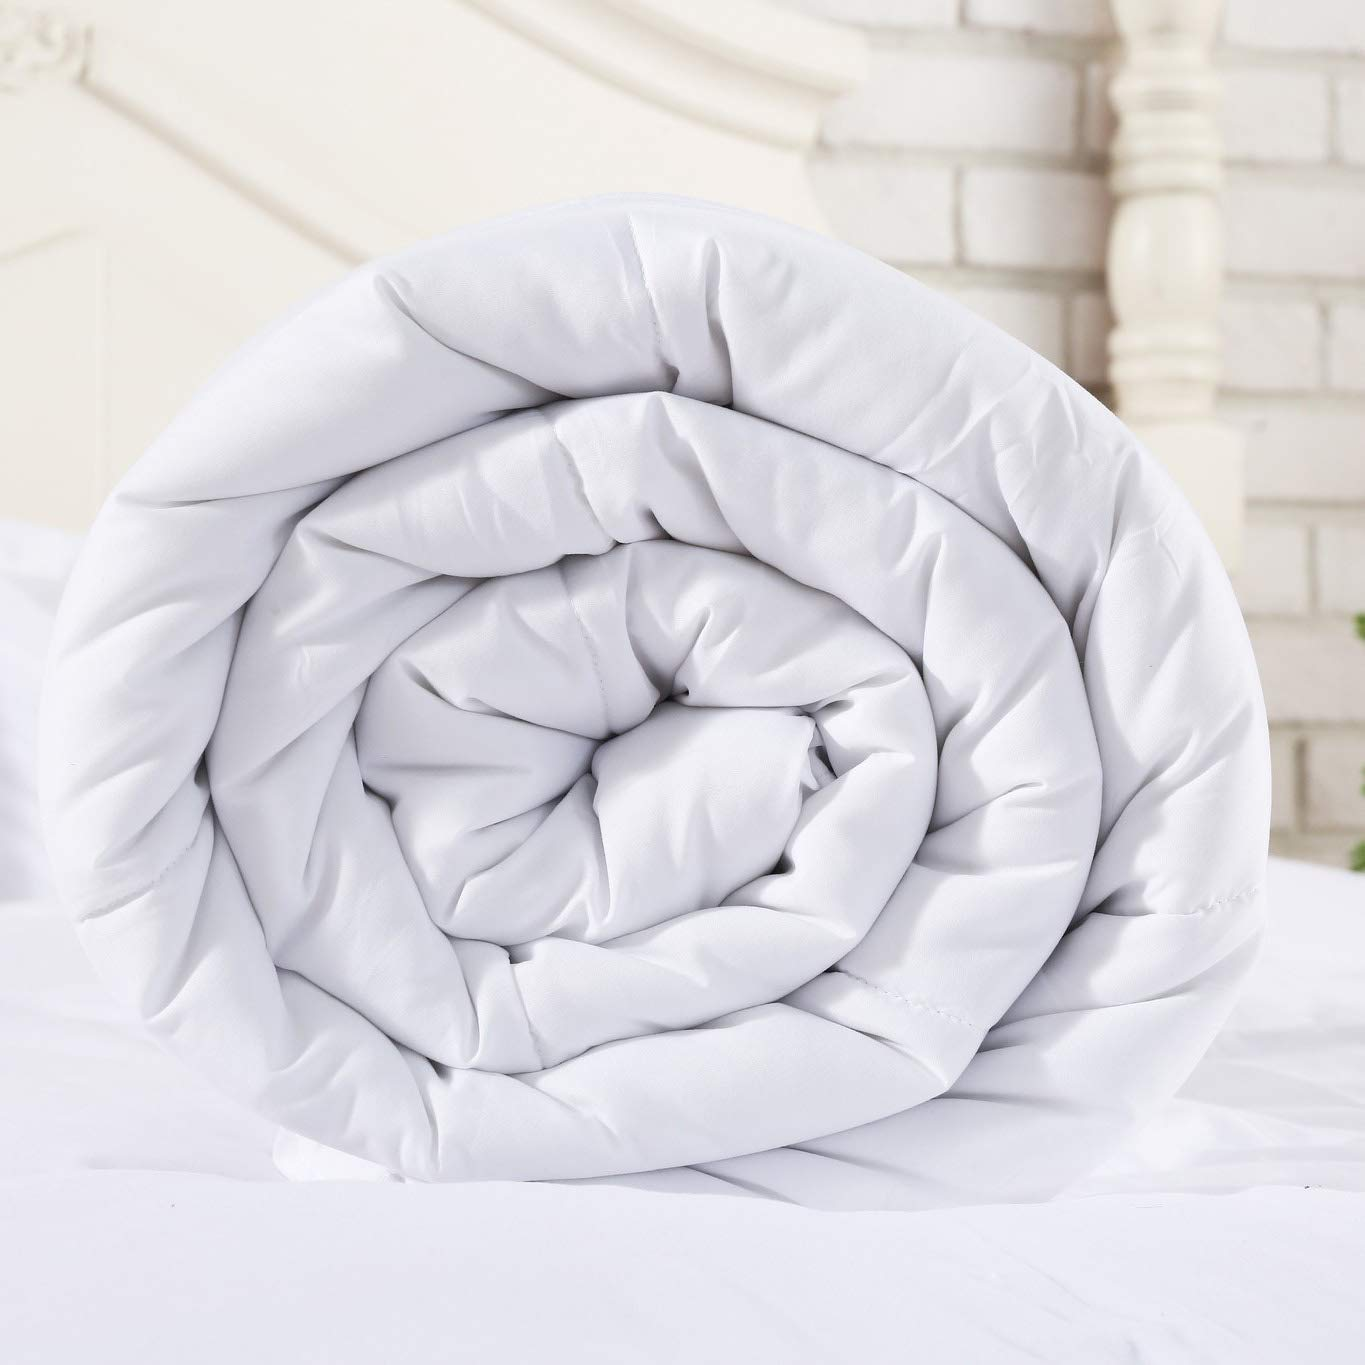 SNUZZZZ Premium Down Alternative Quilted Comforter with Nanotex Coolest Comfort Temperature Regulating, Reversible and All-Season Available, Plush Microfiber Fill, Duvet Insert or Stand-Alone (King)